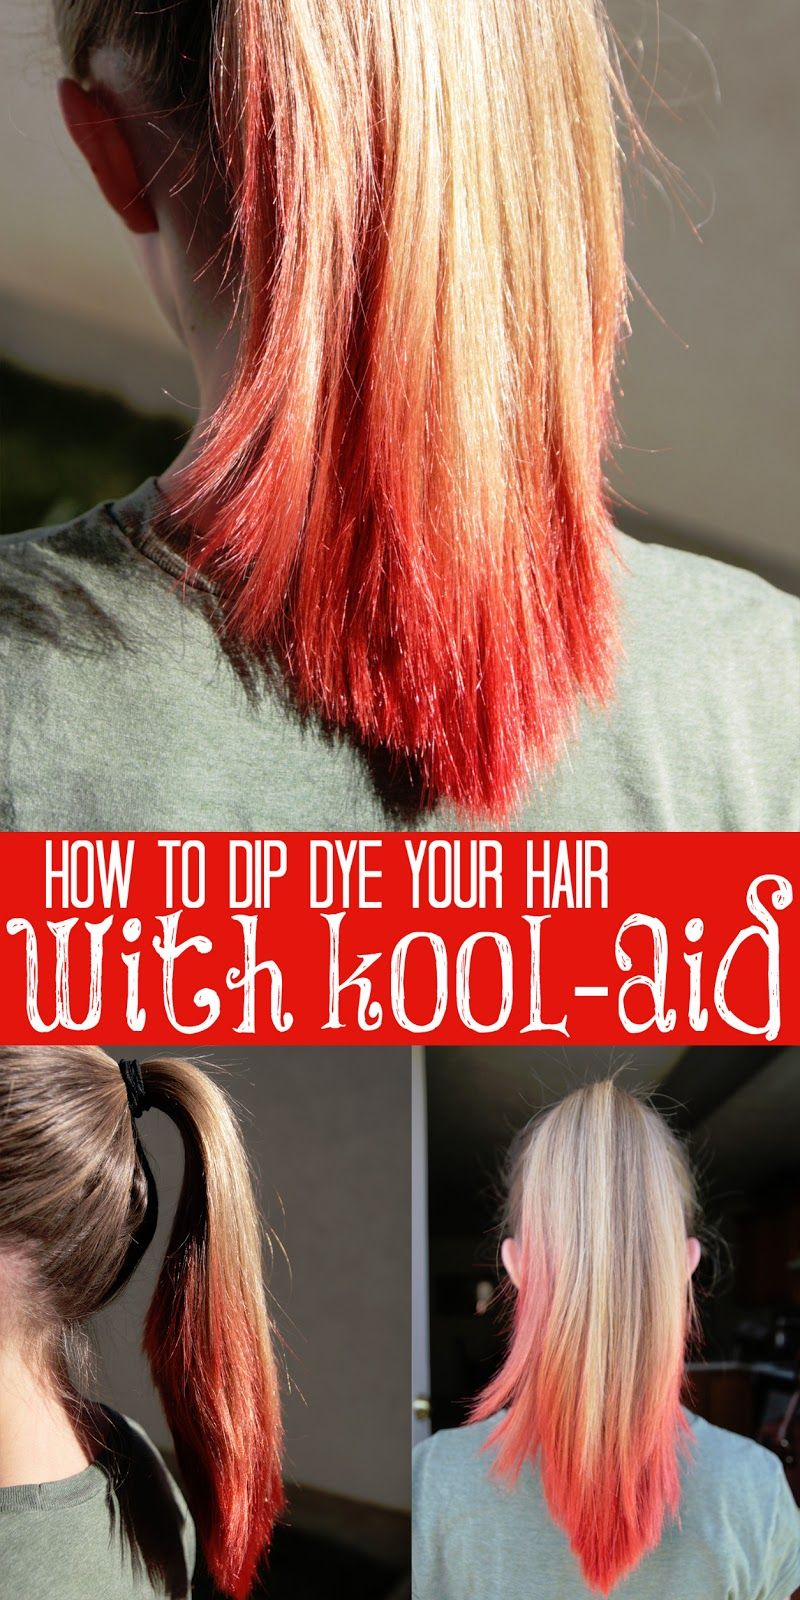 How To Dip Dye Your Hair With Kool Aid Tips From A Typical Mom Kool Aid Hair Dye Kool Aid Hair Dip Dye Hair